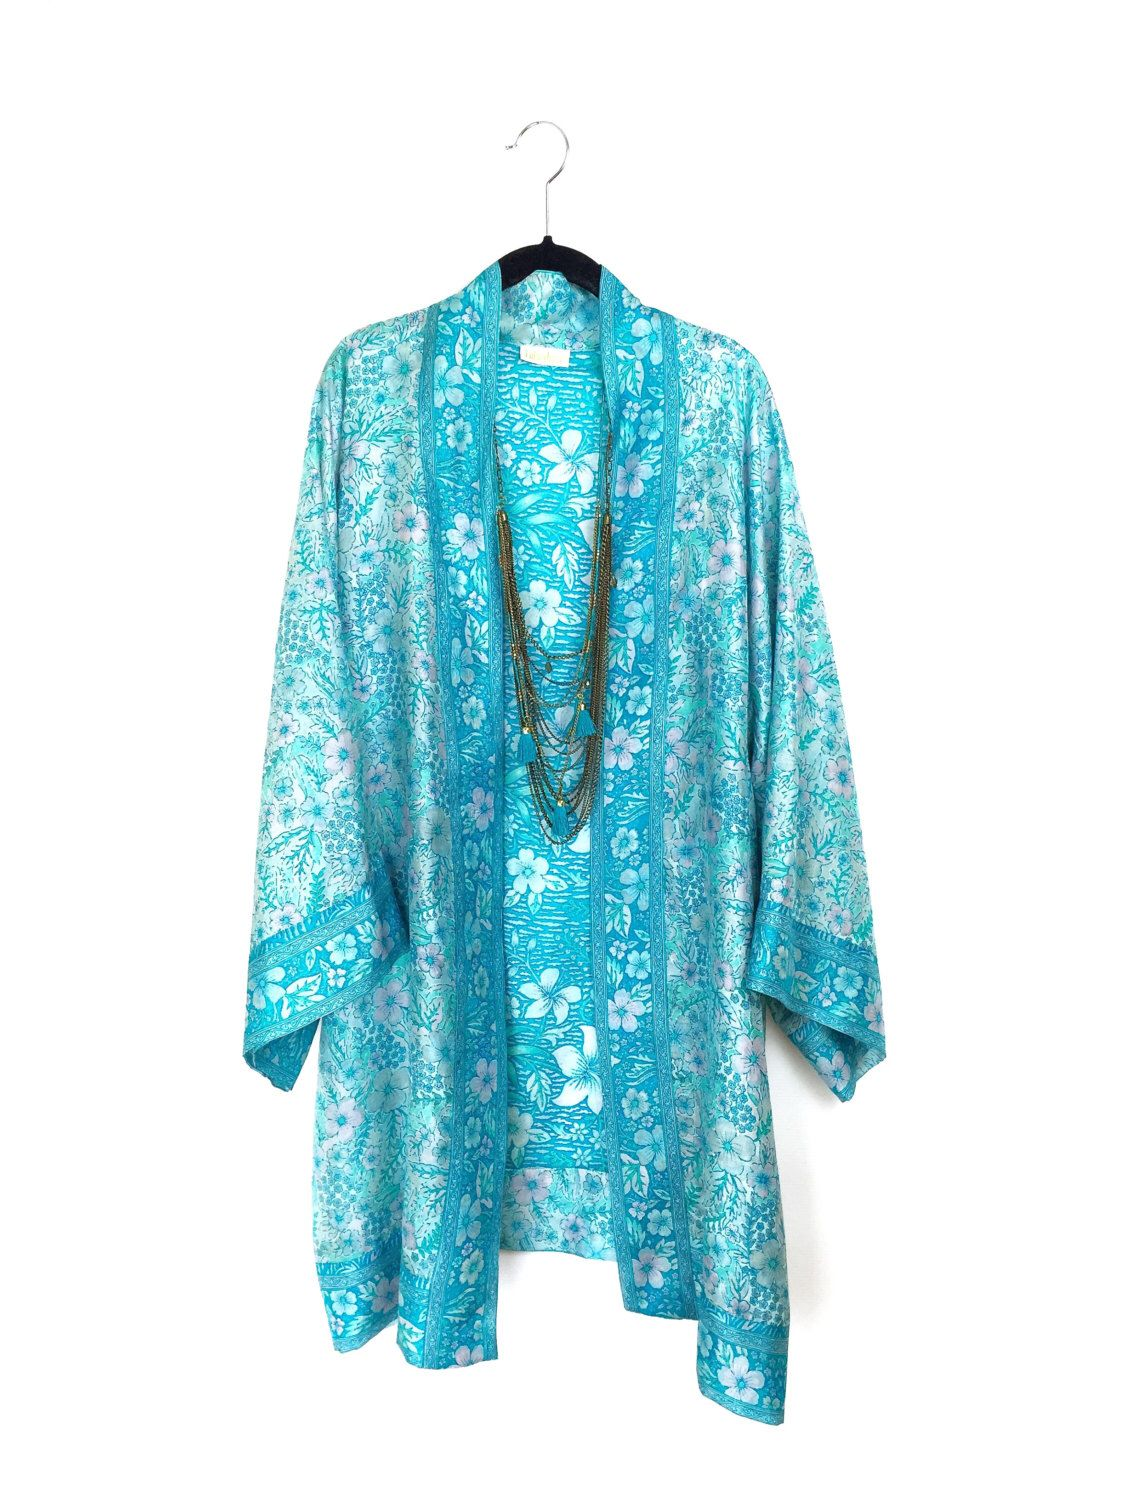 Silk Kimono jacket oversized style, in light turquoise blue,with ...